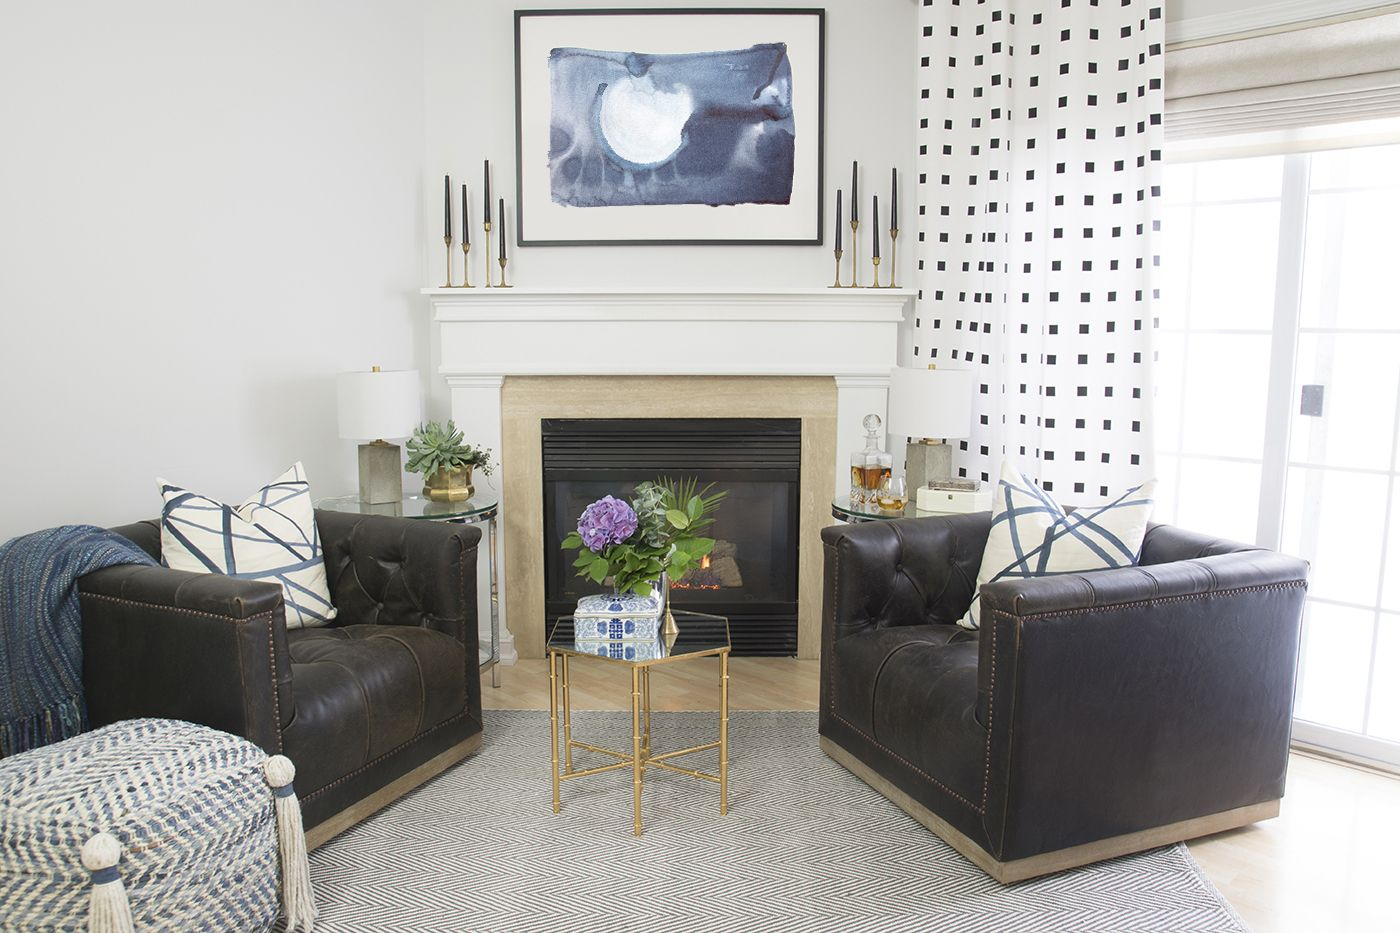 Fireplace Area Makeover Reveal | Leather swivel chair, Metal accents ...